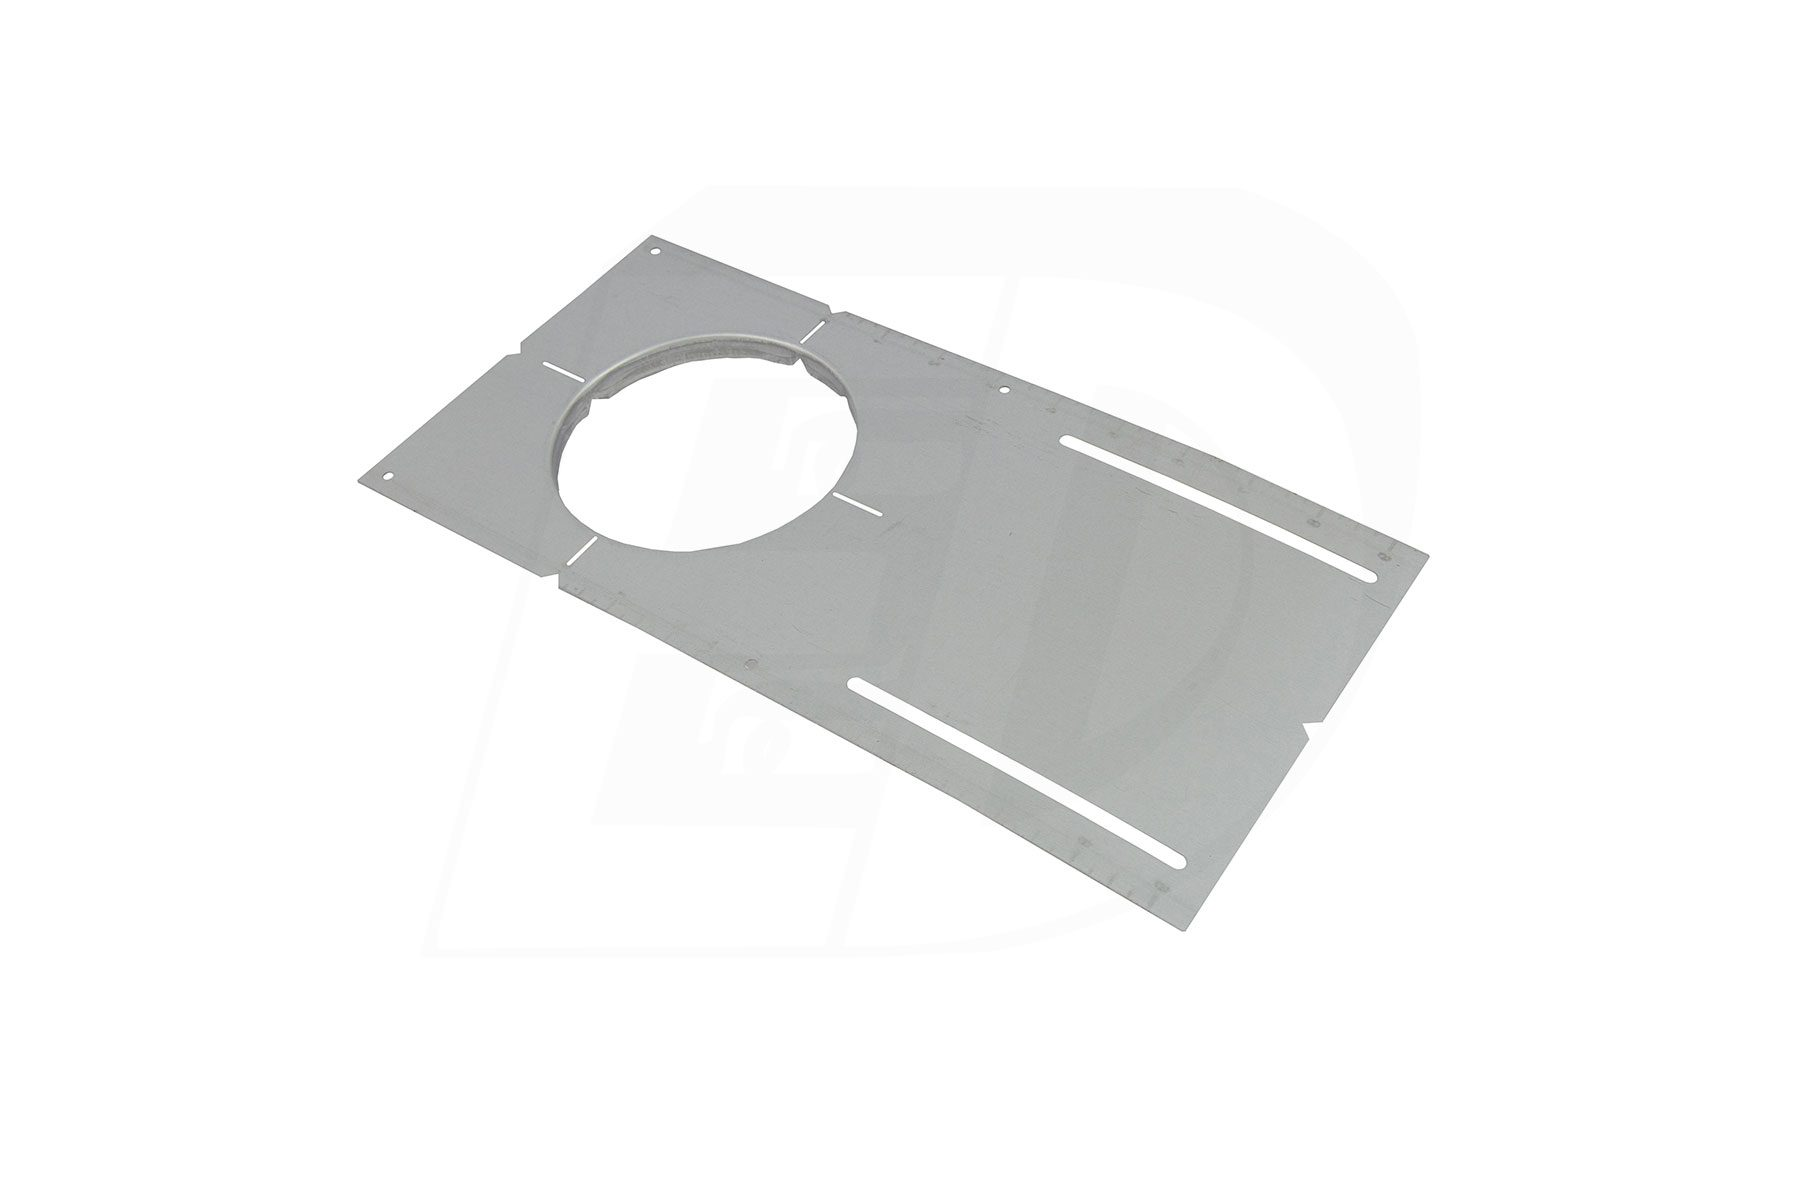 Round Hole Cut Pre-Mounting Plate for DLSR 6 Inch. Round Integrated LED Ultra Thin Color Selectable Canless Recessed Lighting